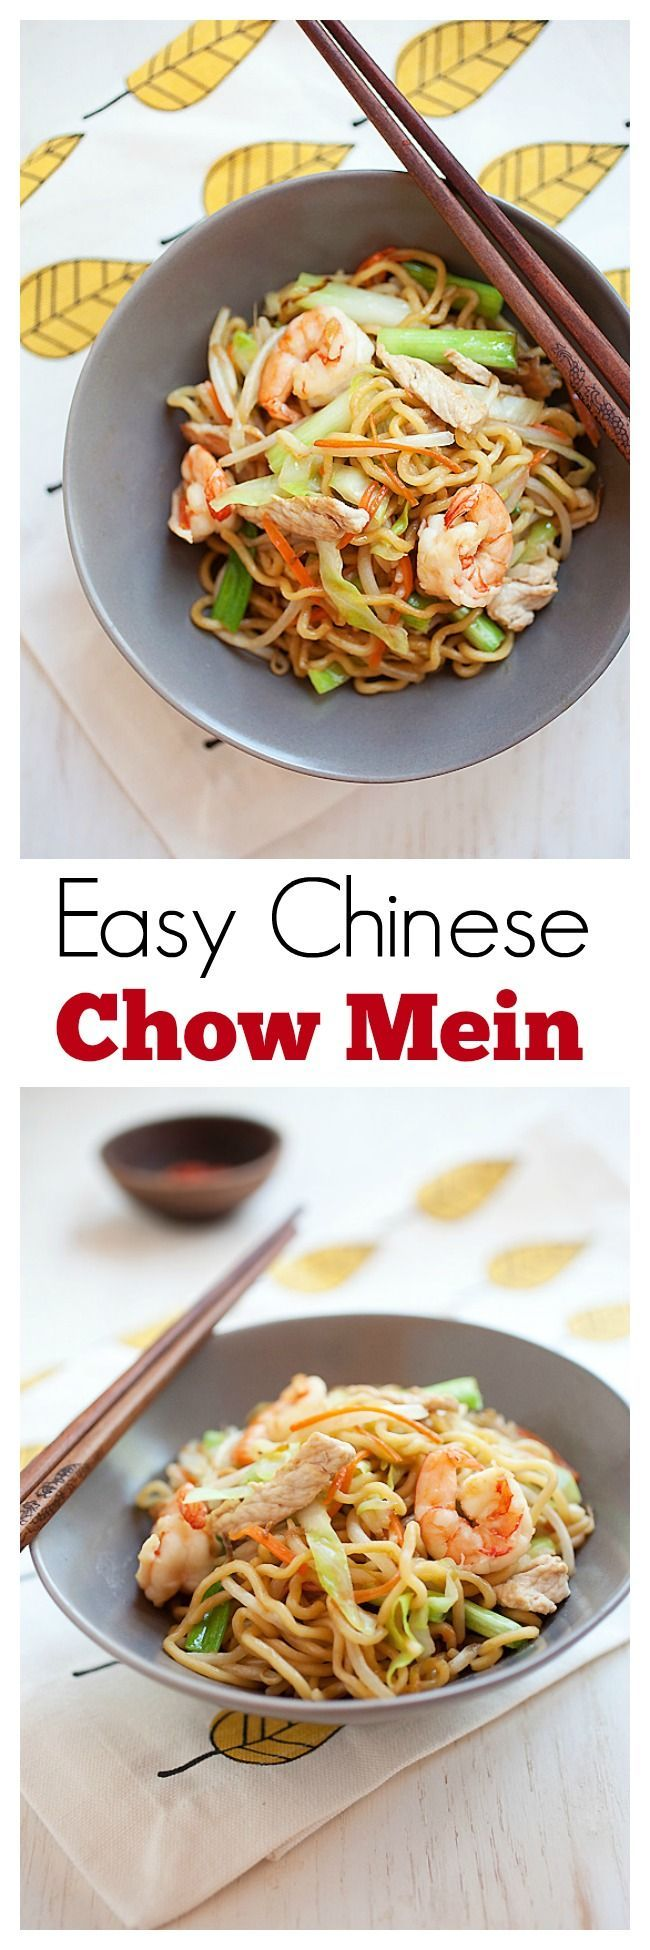 Find This Pin And More On Chinese Food